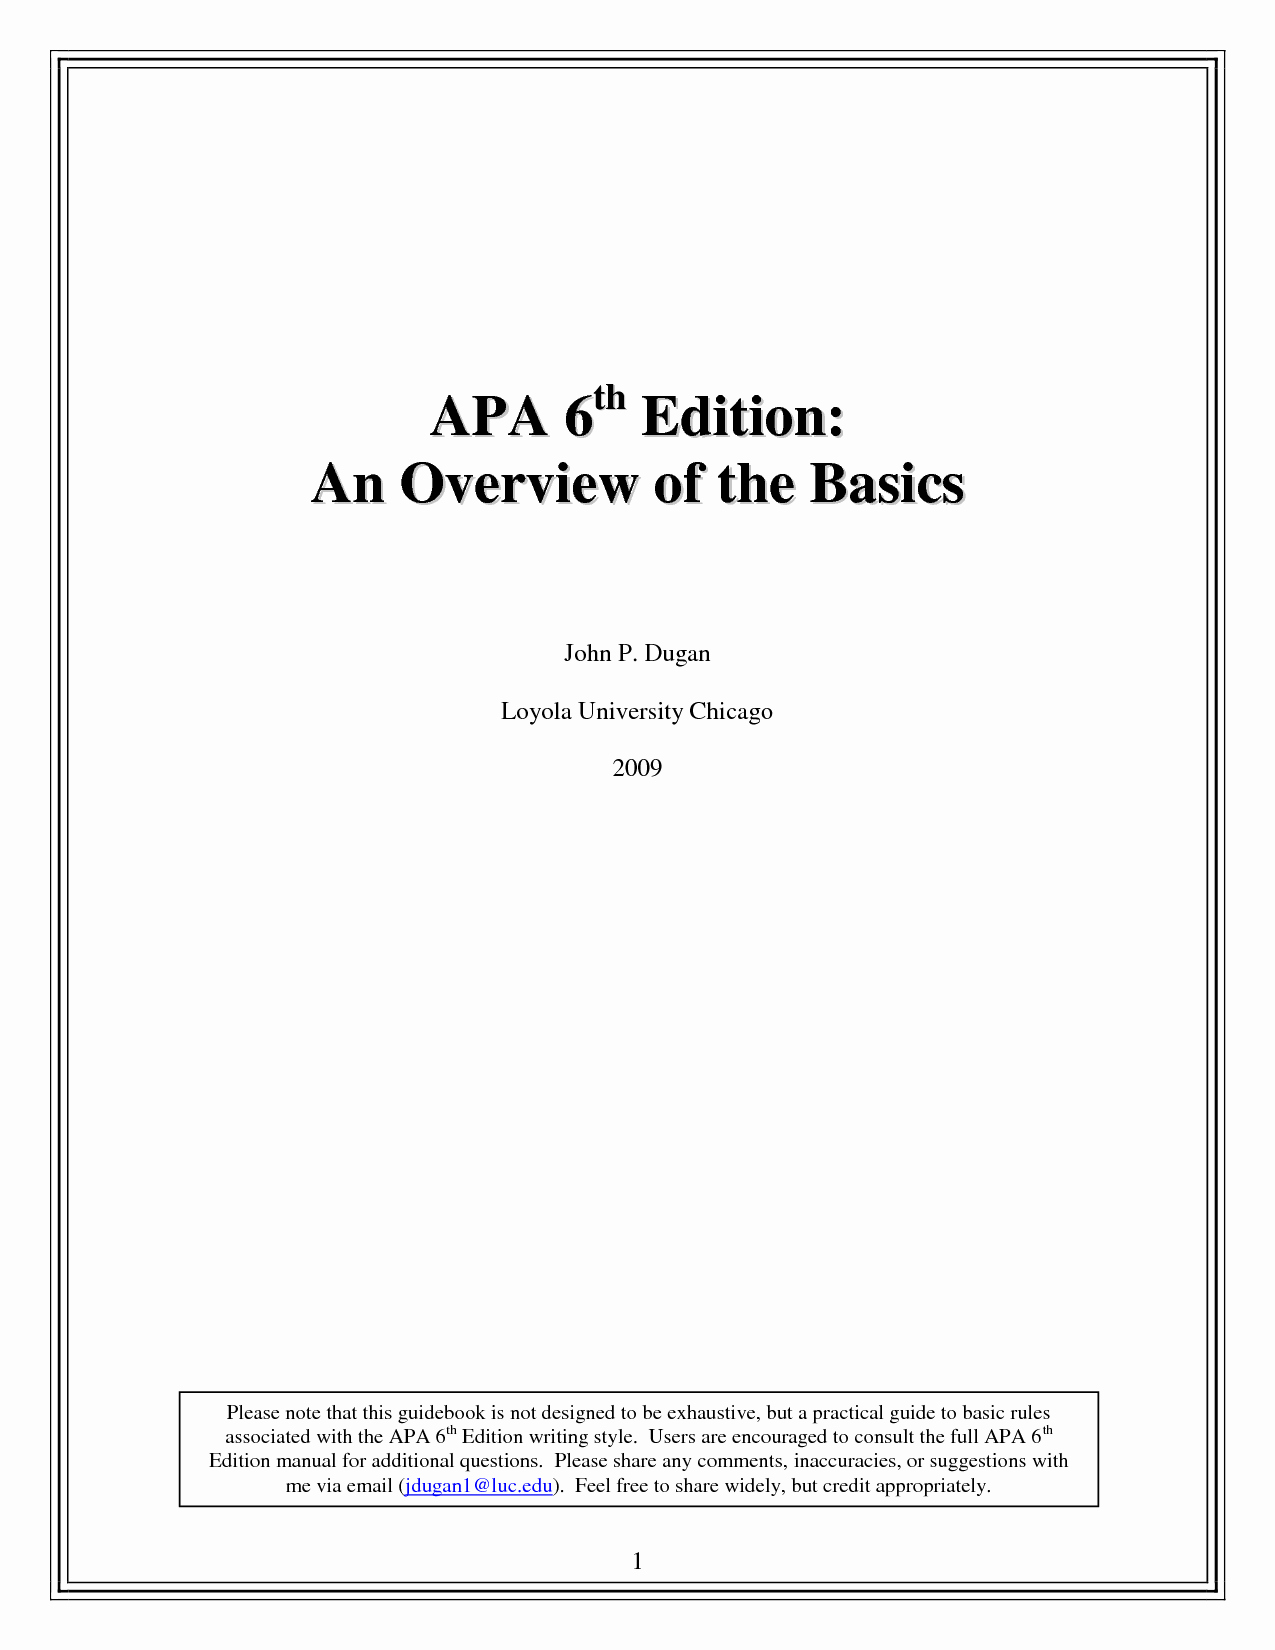 Cover Page for Literature Review Unique Apa 6th Edition Template